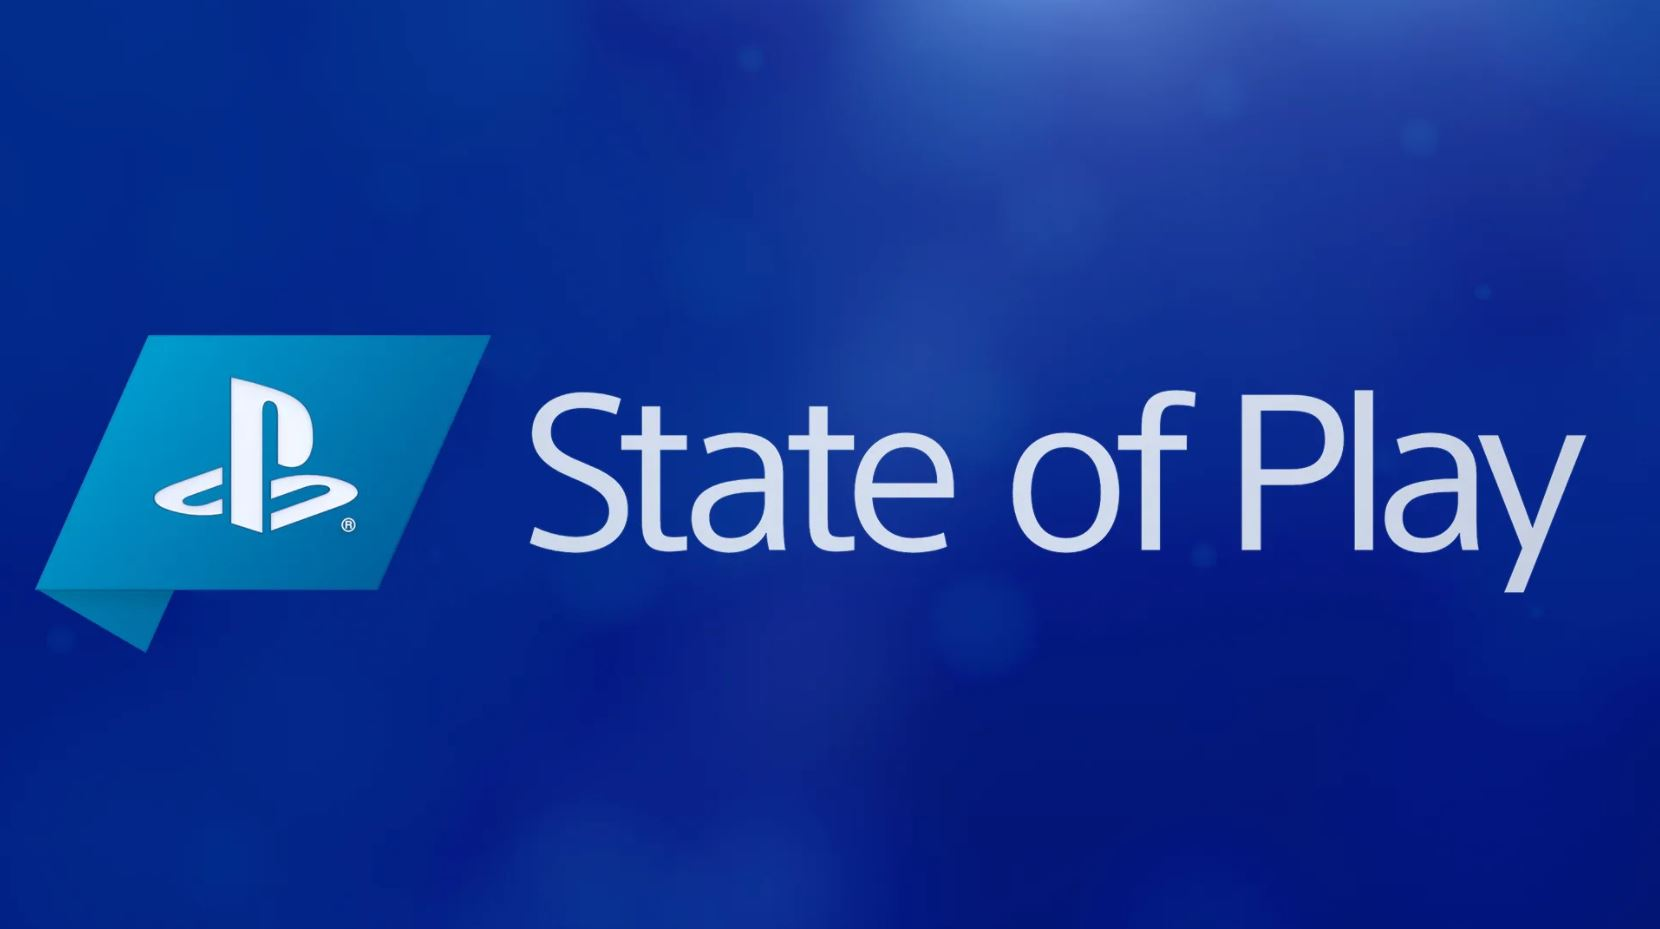 O showmetech fará uma cobertura ao vivo do state of play